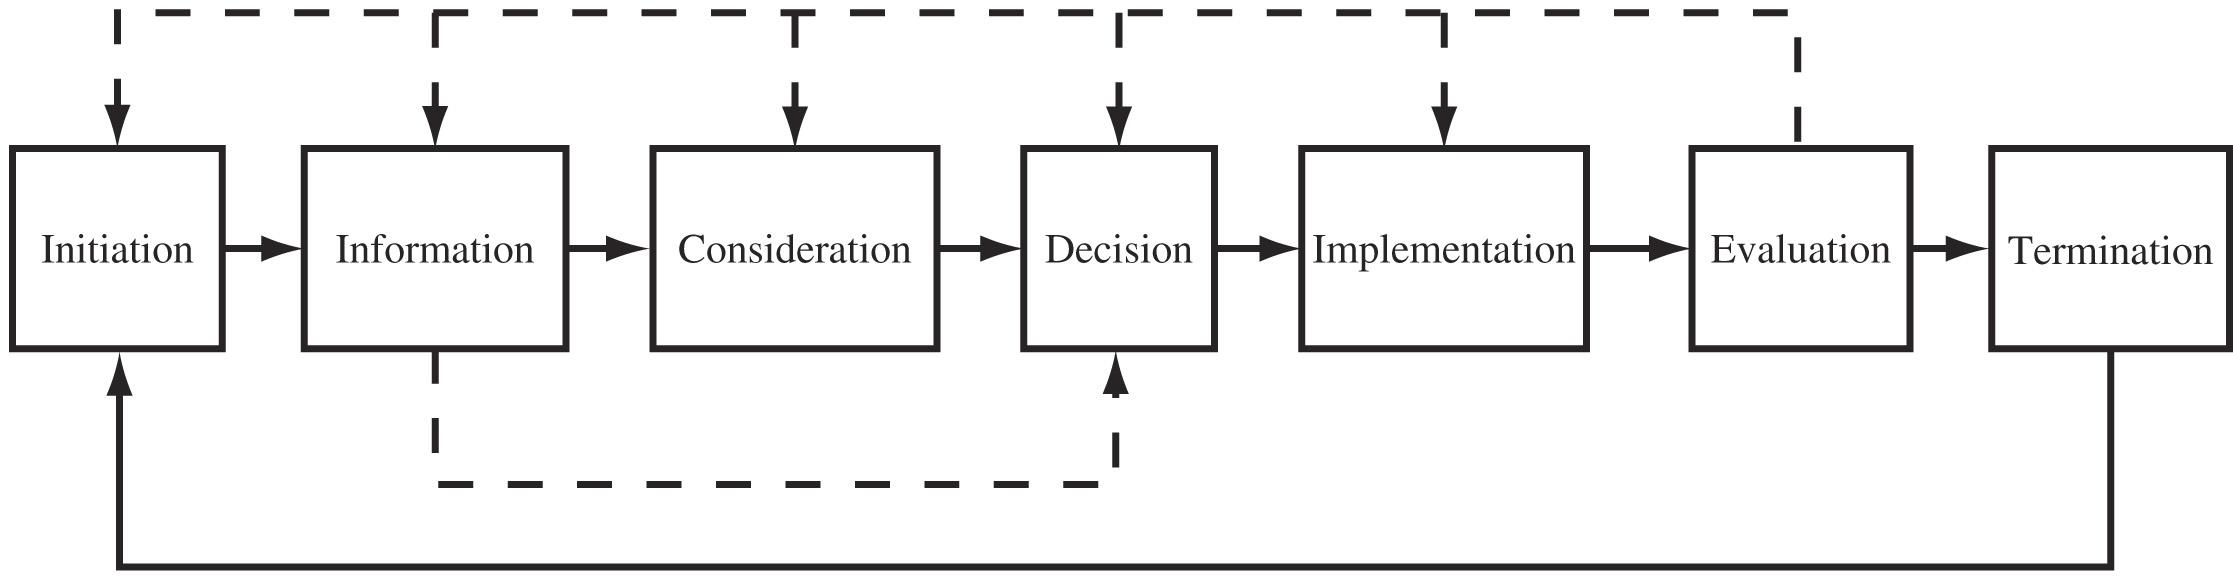 Linear Stages of Policy Process from the Rational Framework. Adapted from Policy Analysis: A Political and Organizational Perspective by William Jenkins (1978, p. 17) .